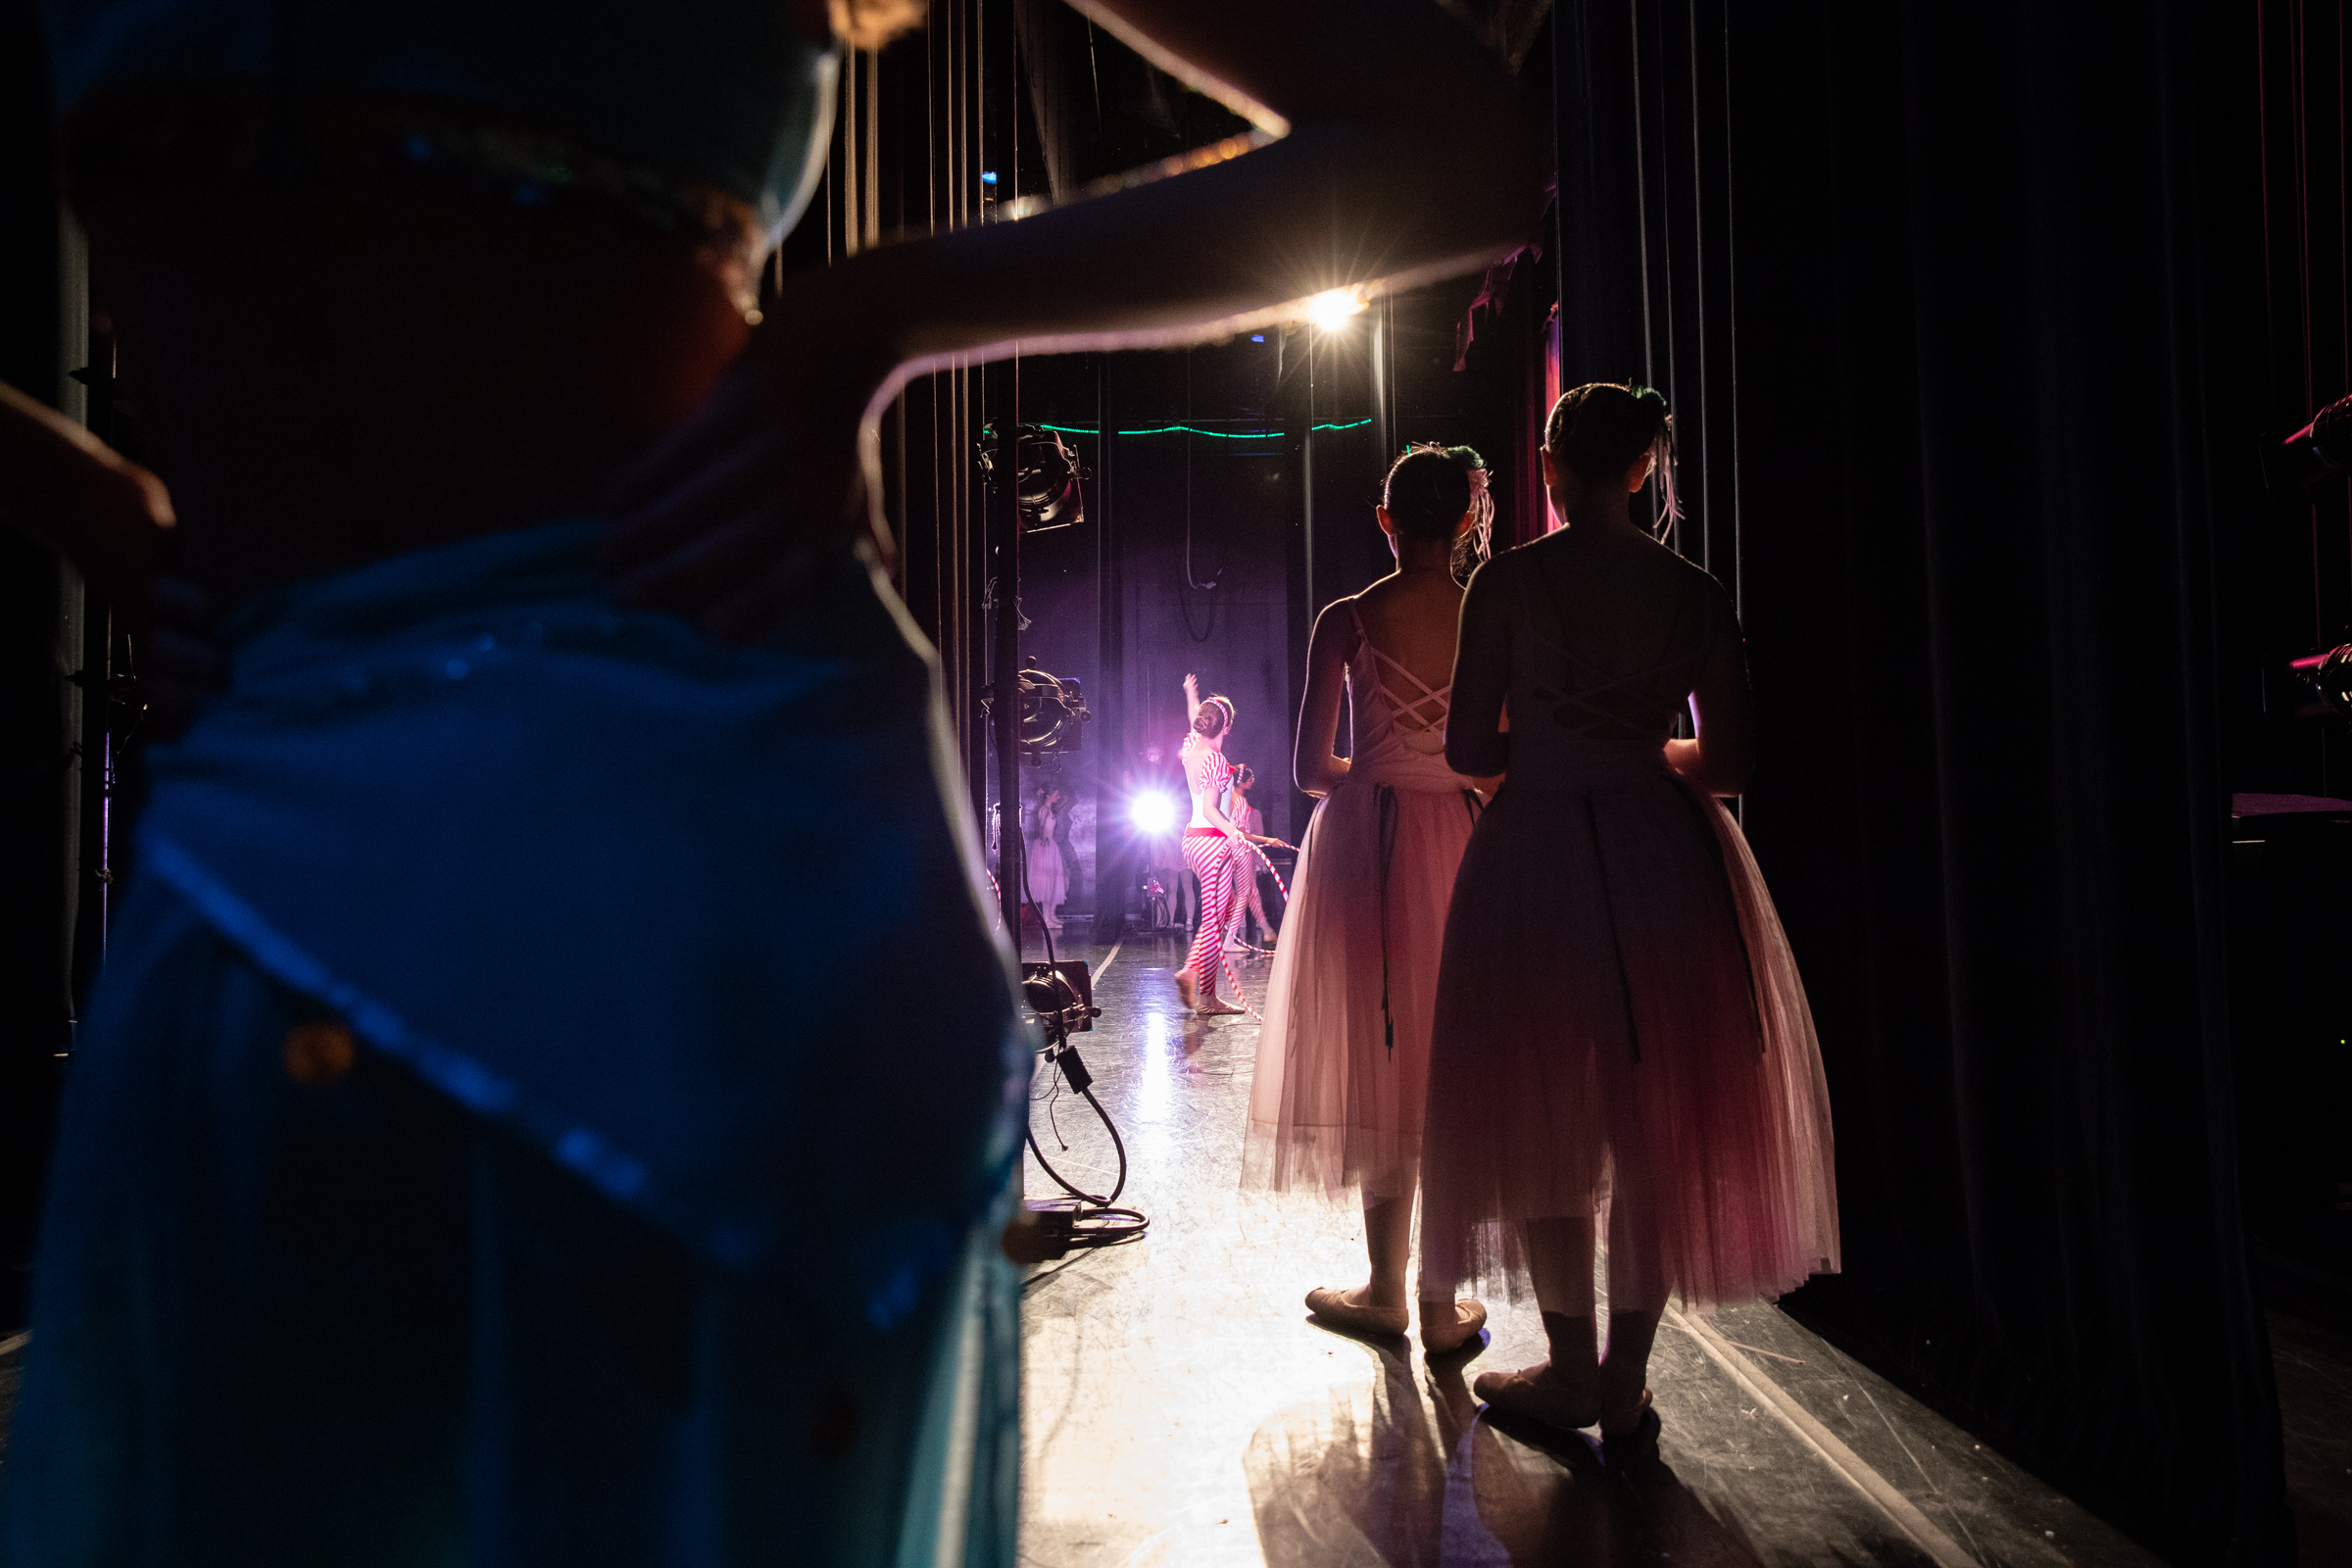 """Performers offstage watch the Candy Canes dance during Western Ballet's production of """"The Nutcracker"""" at the Mountain View Center for the Performing Arts on Dec. 2, 2018."""